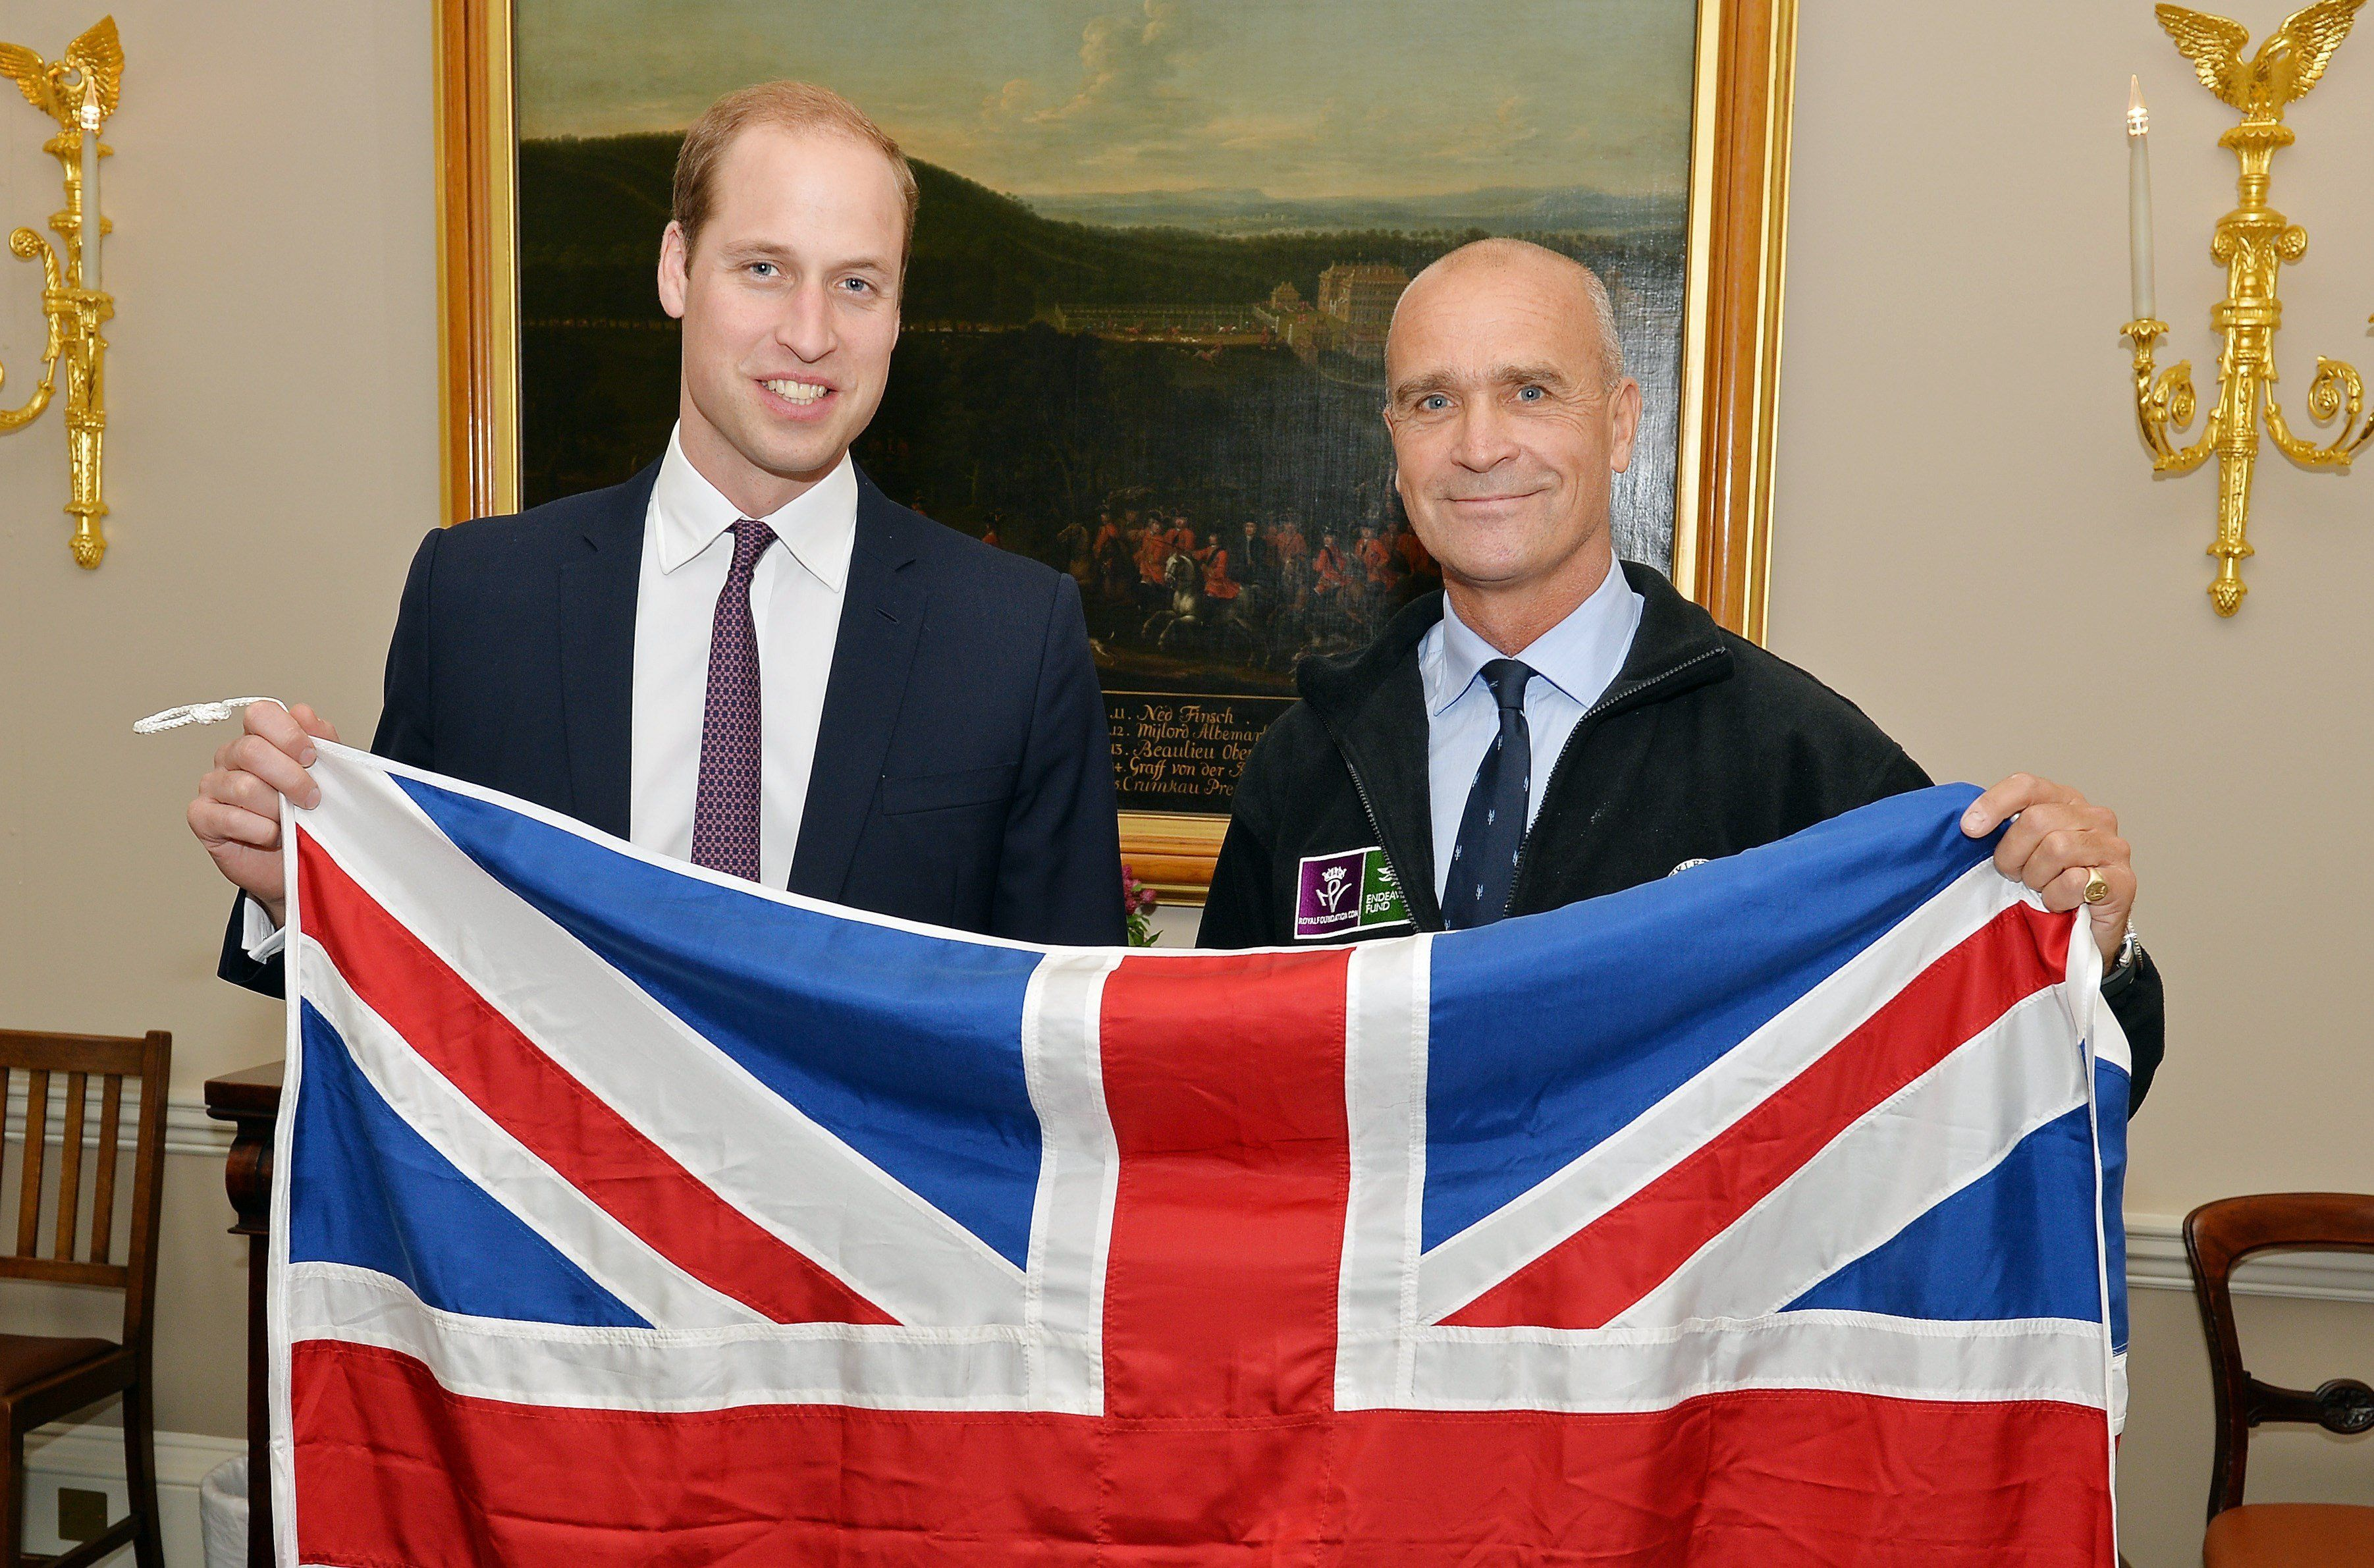 Britain's Prince William, Duke of Cambridge, (L) and polar explorer Henry Worsley, pose with a Union flag at Kensington Palace in London on October 19, 2015. Worsley will undertake the 2015/16 Shackleton solo challenge starting in November, and attempting to undertake Sir Ernest Shackleton's unfinished journey to the South Pole from the Weddell Sea.   AFP PHOTO / JOHN STILLWELL / POOL        (Photo credit should read JOHN STILLWELL/AFP/Getty Images)